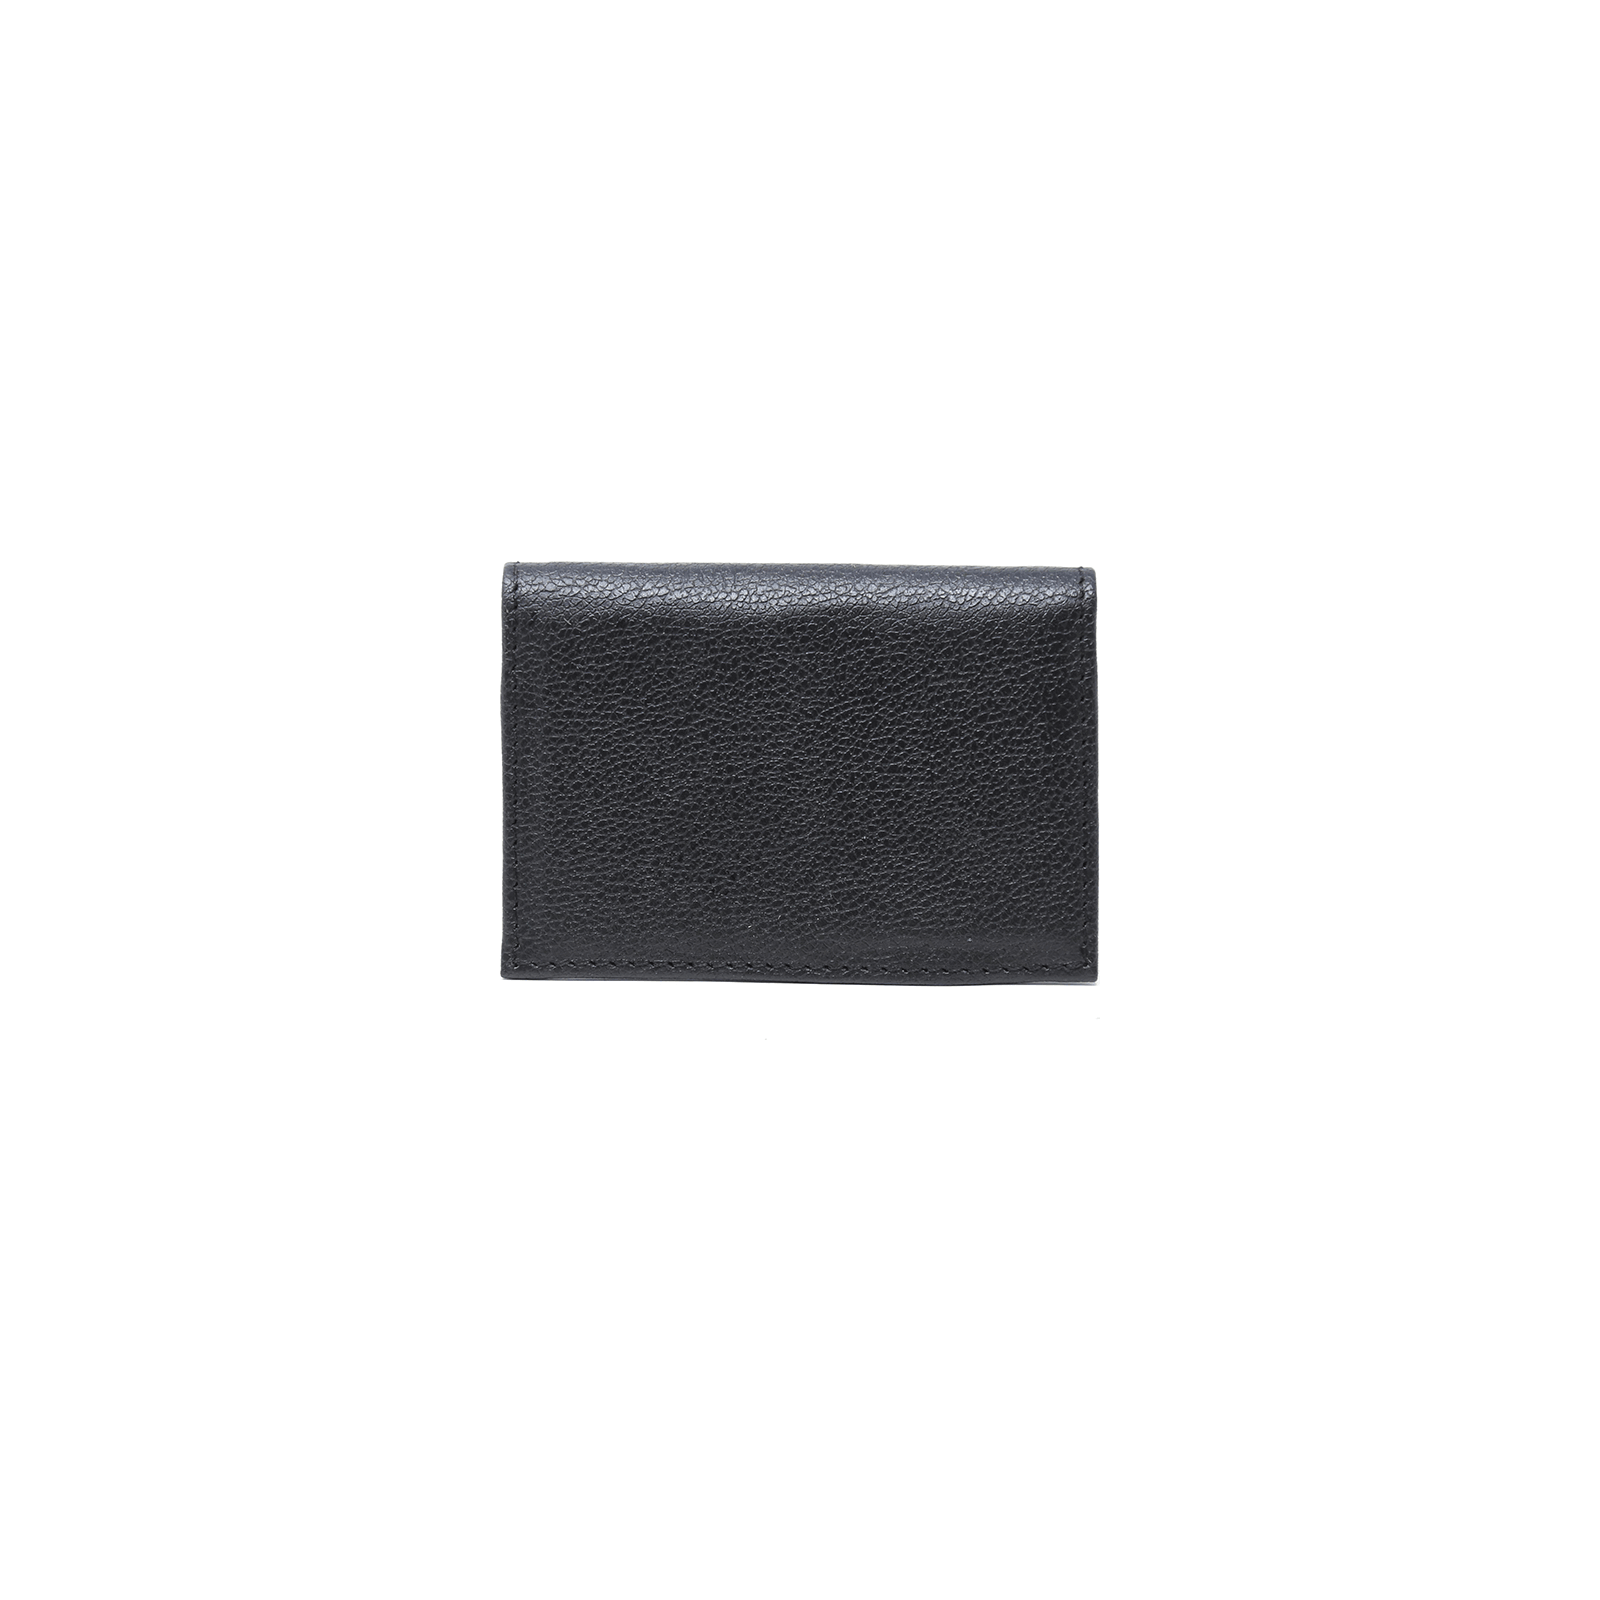 Medium Black Wallet